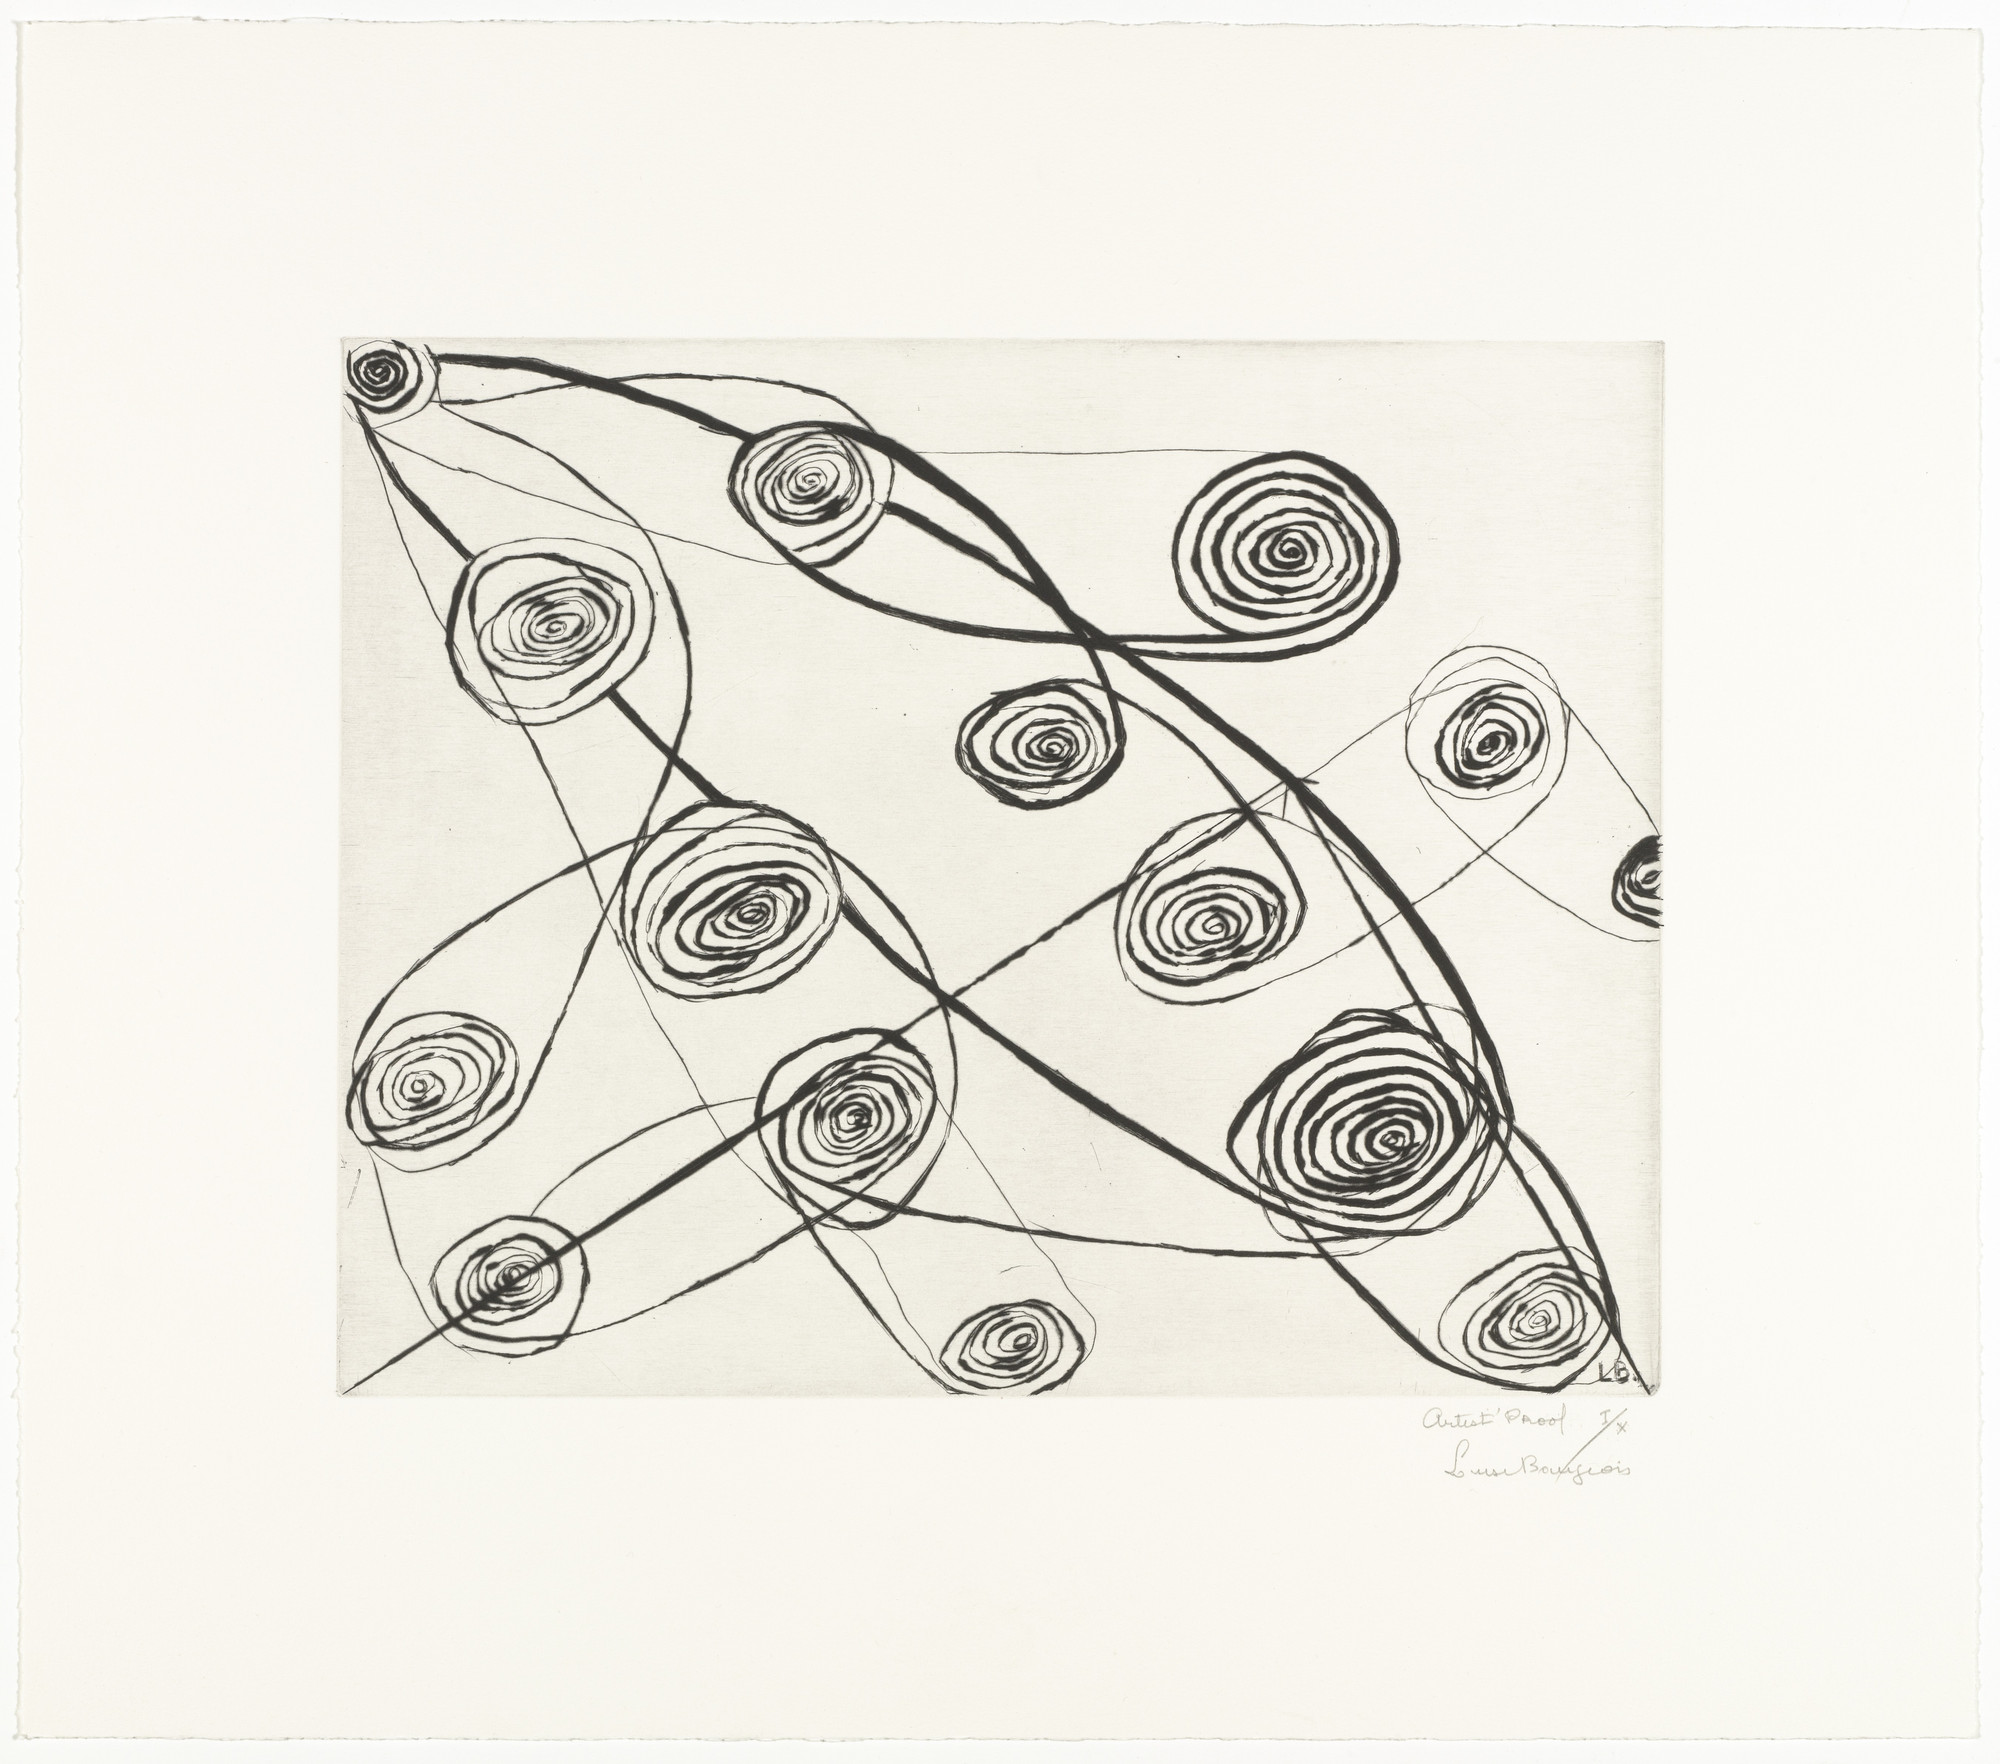 Louise Bourgeois. Untitled. 1991